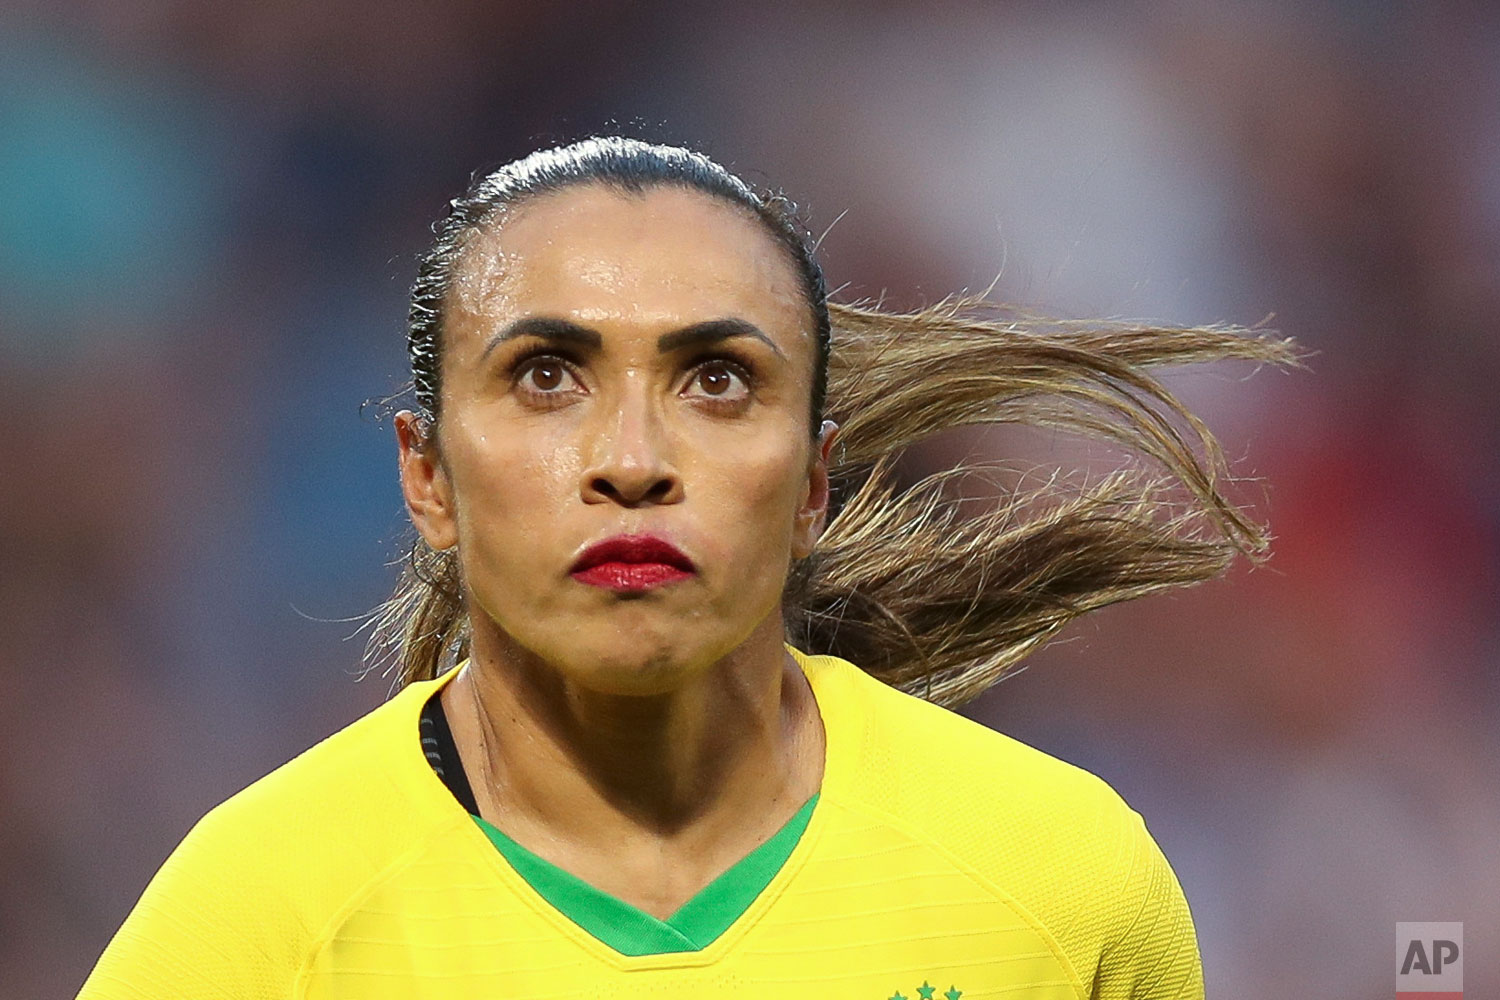 Brazil's Marta runs during the Women's World Cup round of 16 soccer match between France and Brazil at the Oceane stadium in Le Havre, France, Sunday, June 23, 2019. (AP Photo/Francisco Seco)